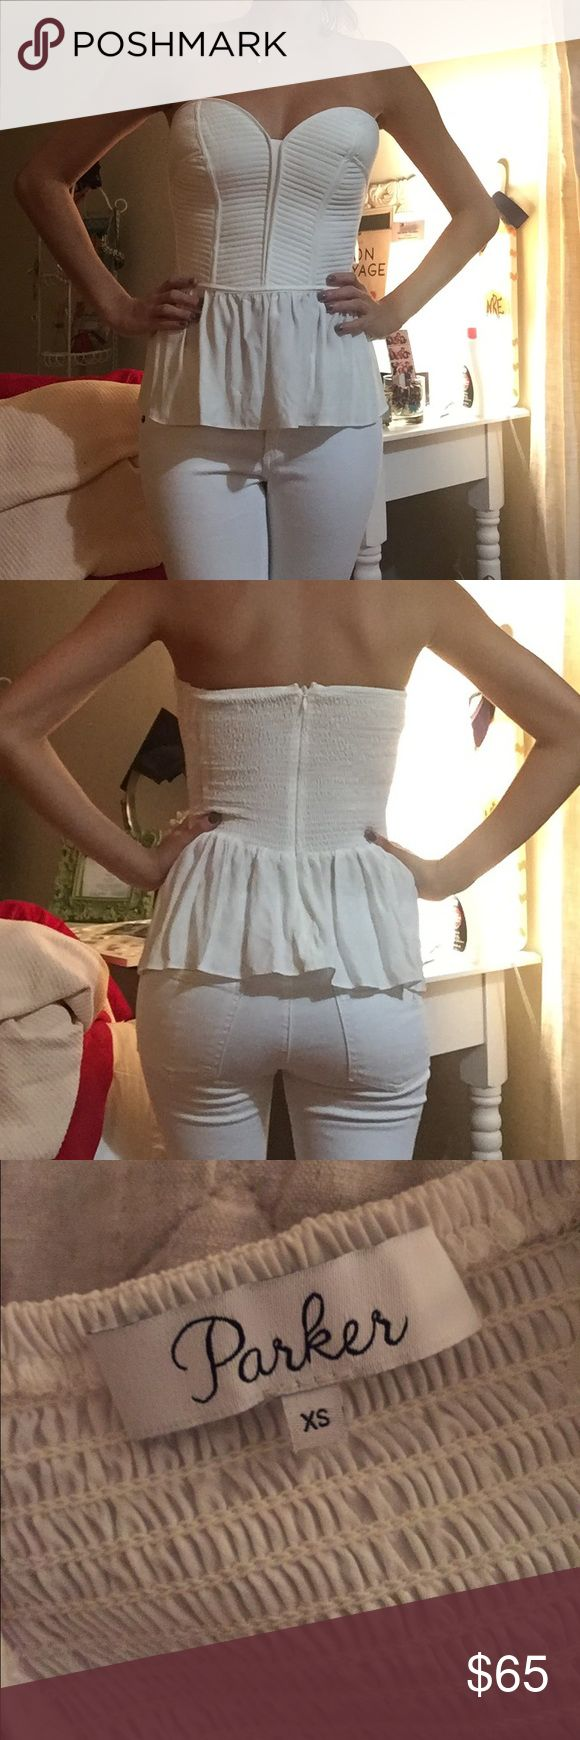 Parker Strapless Bustier Top Worn once and in amazing condition. This strapless silk top features a sweetheart neckline and a topstitched, boned bodice. Puched peplum. Revolve Tops Blouses